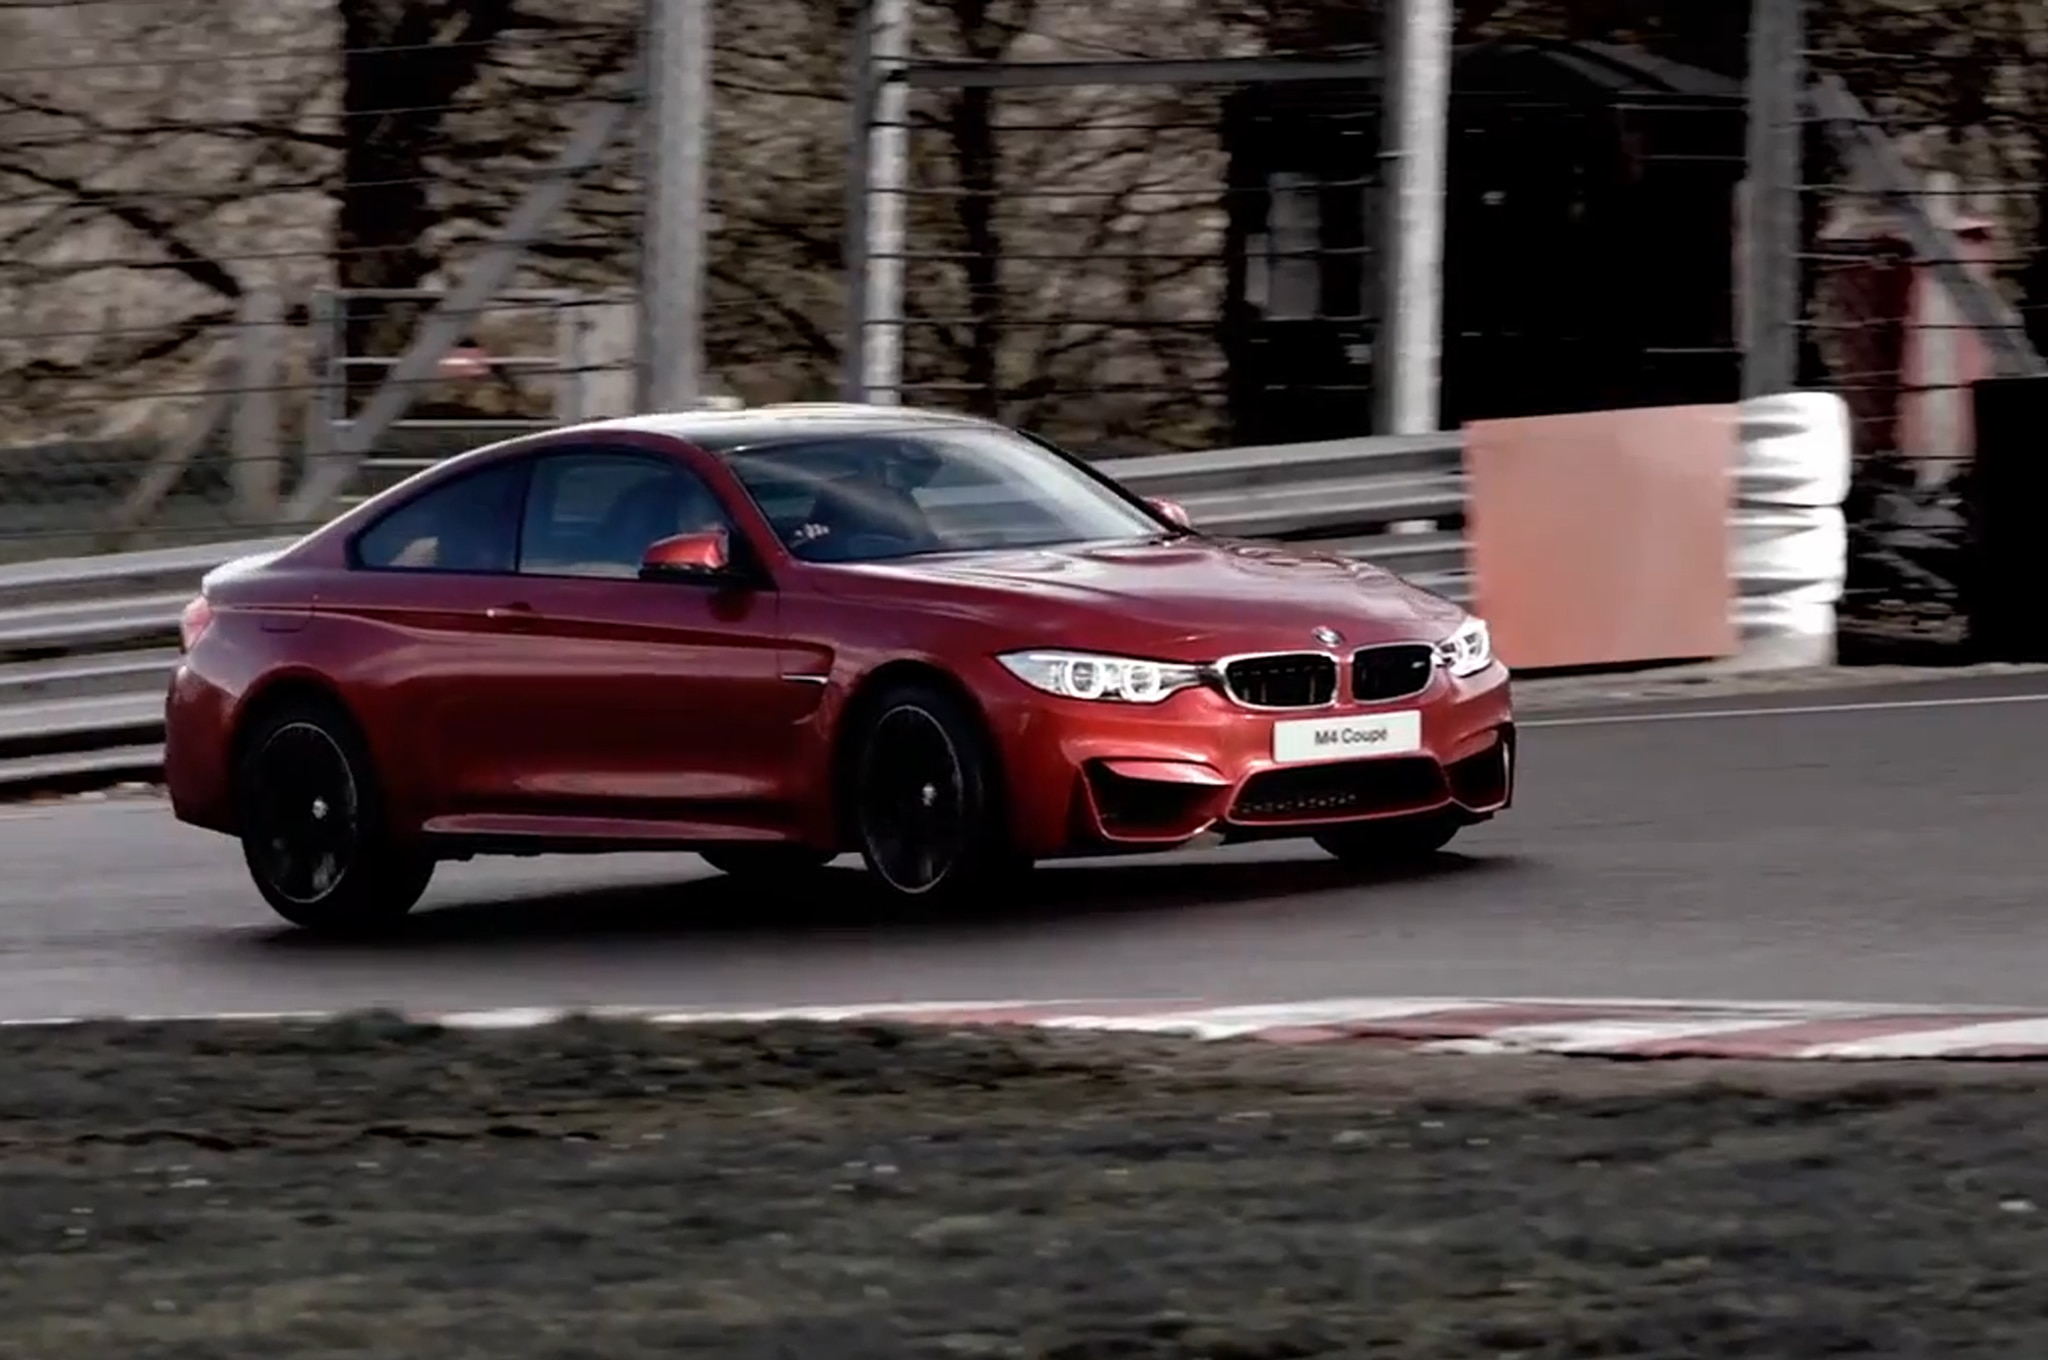 2015 Bmw M4 Lap Timer App Video